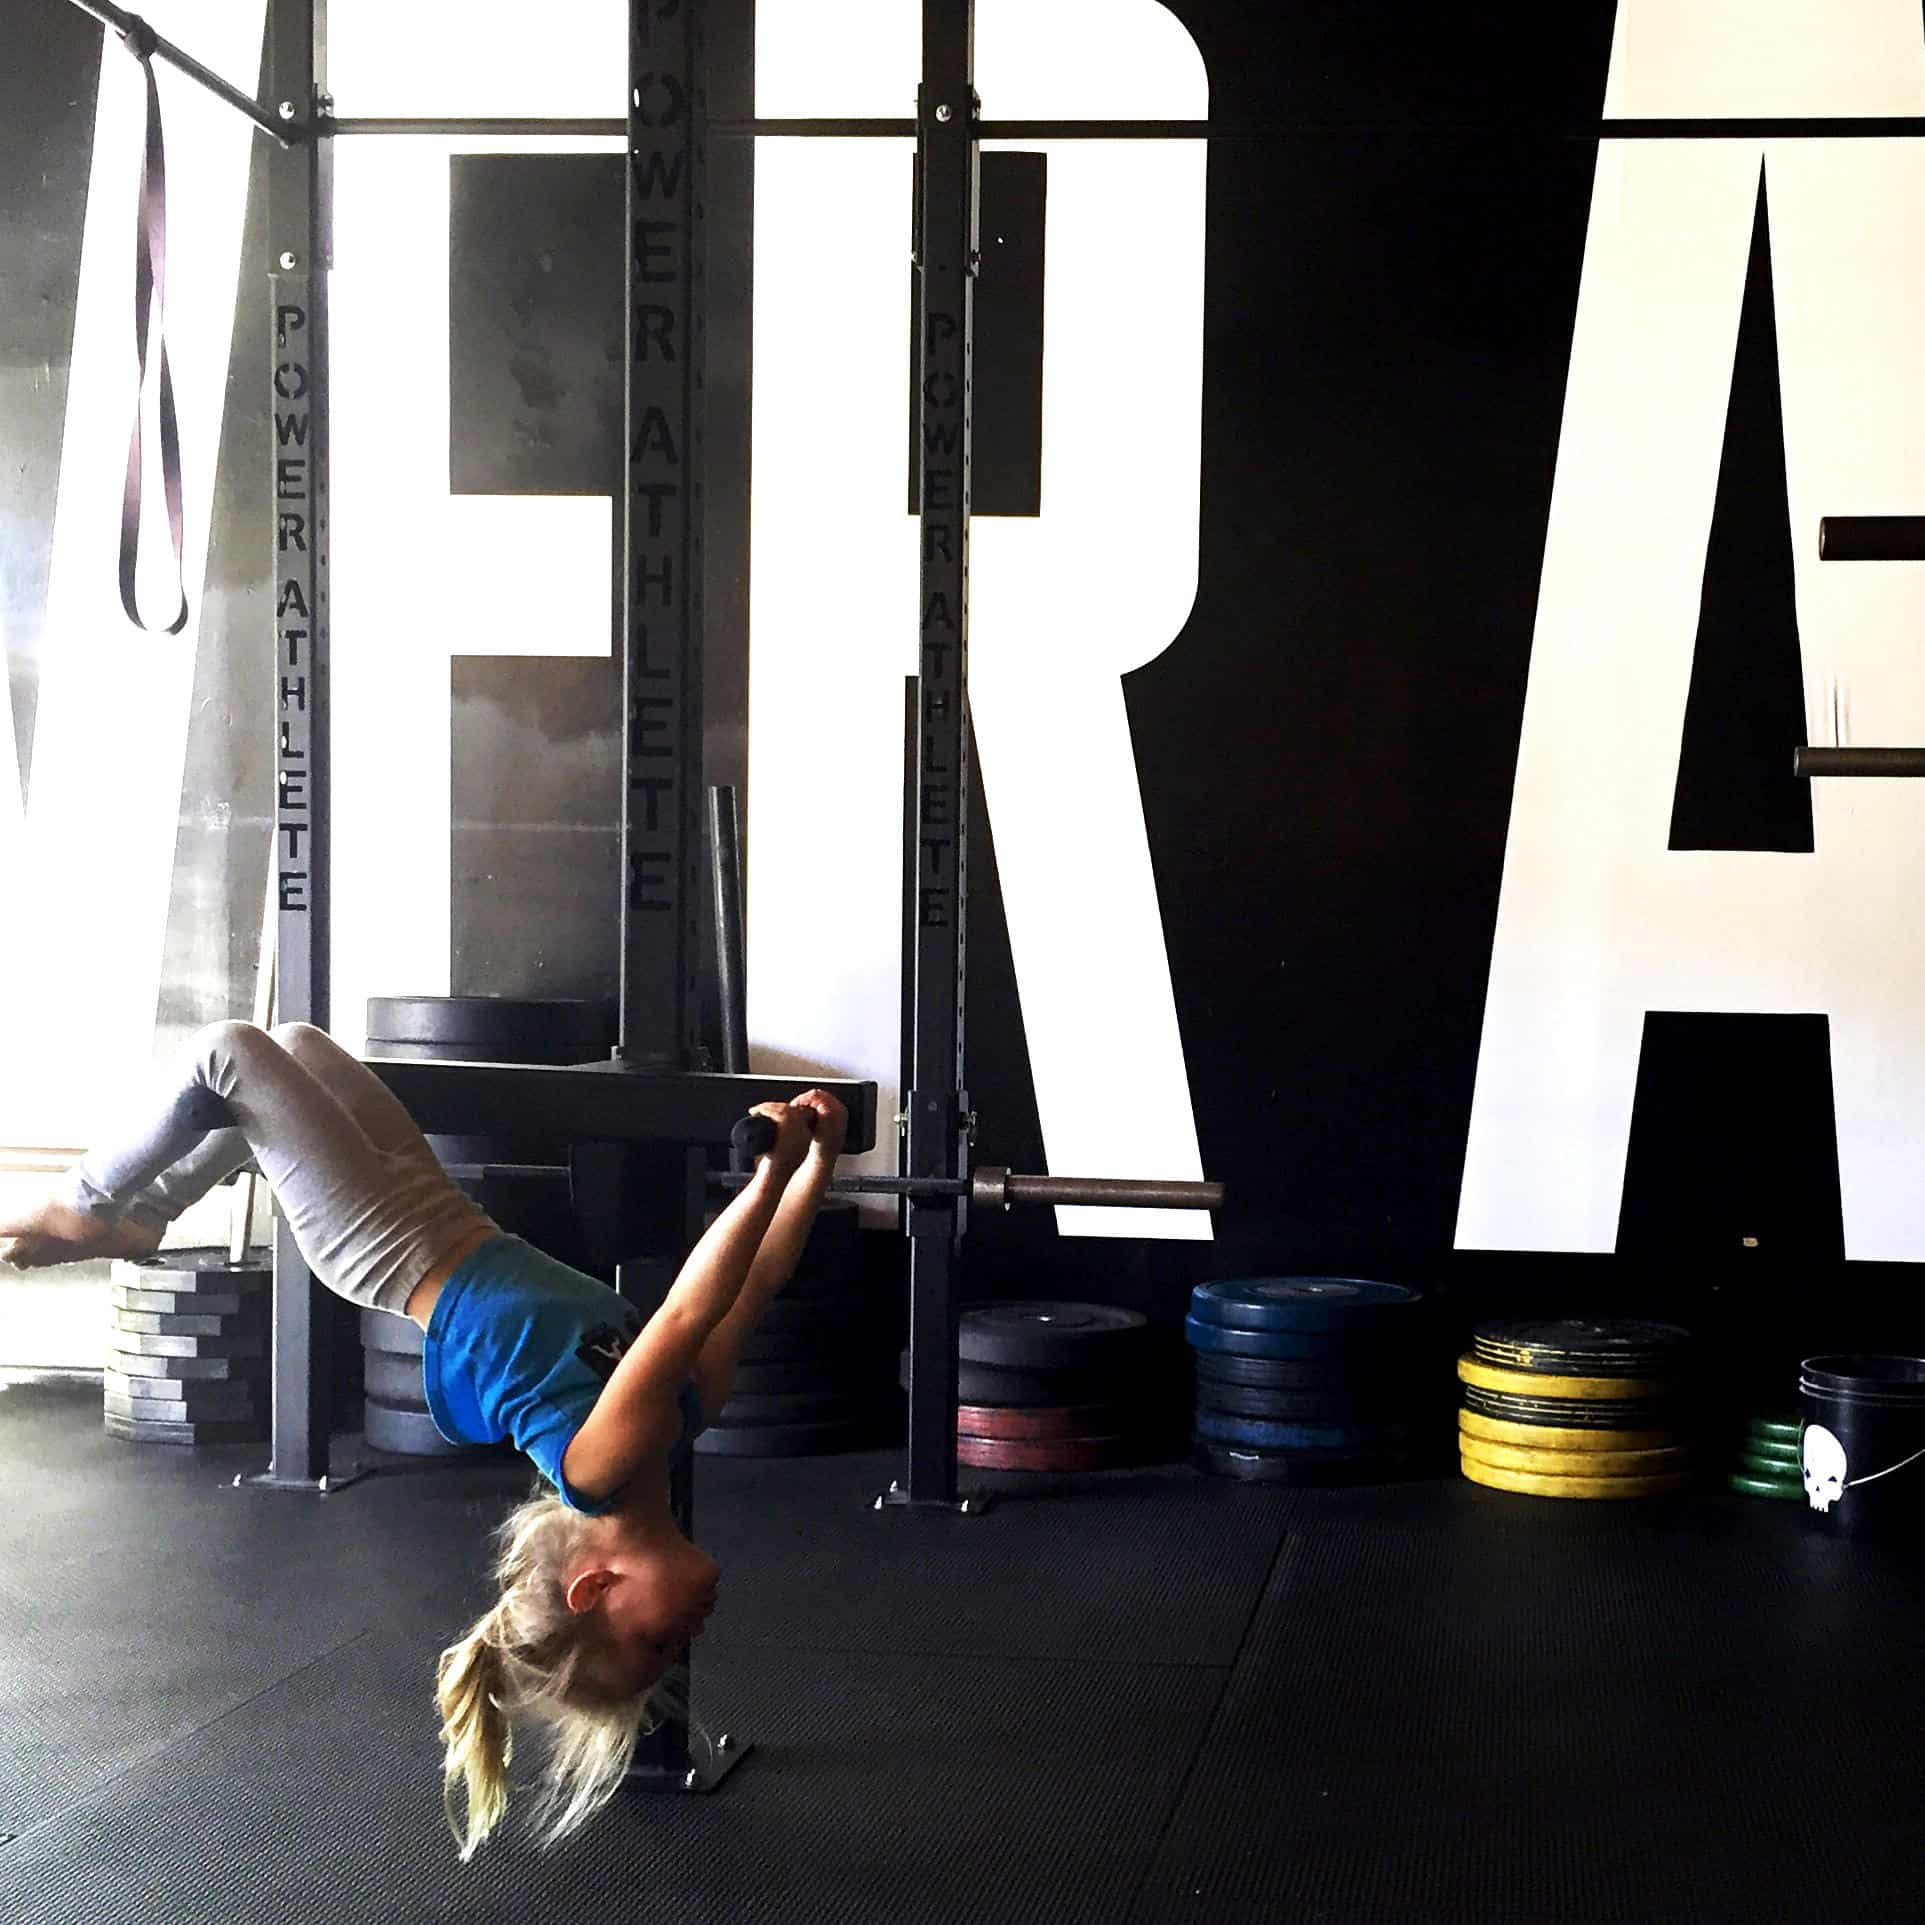 power_athlete_hang_upside_down